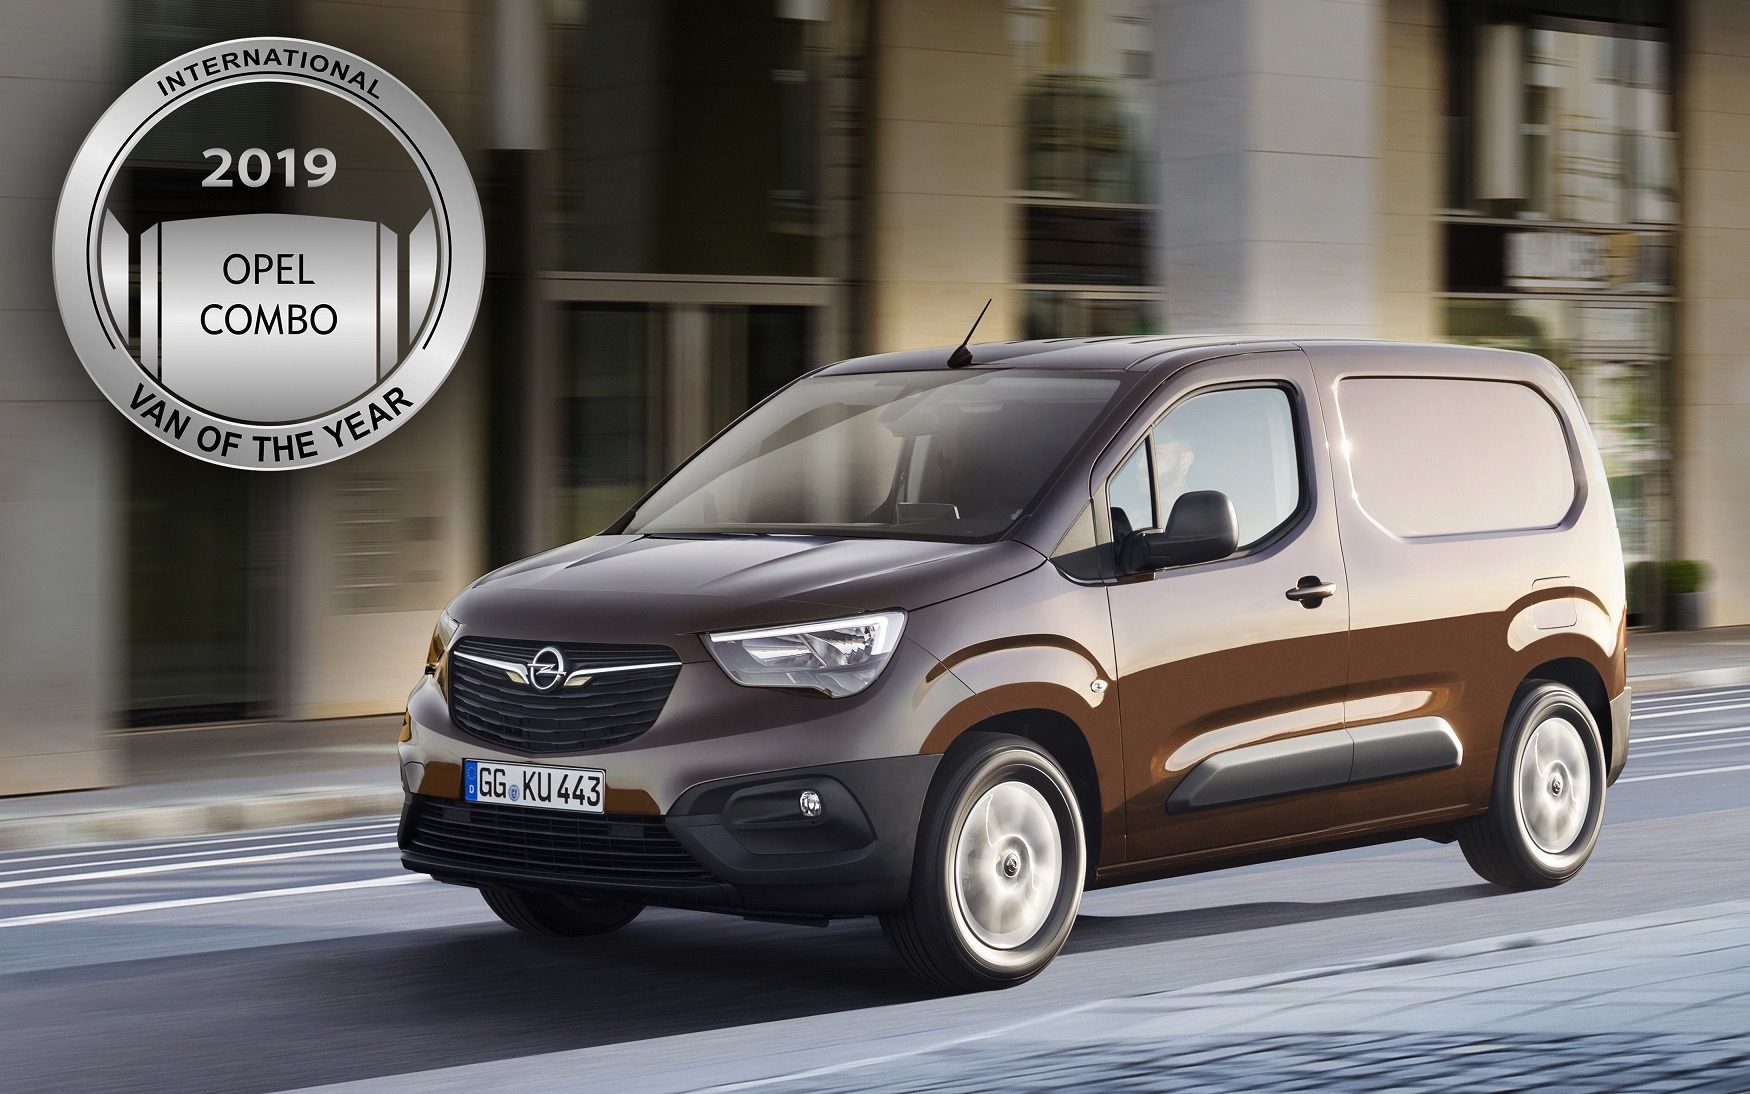 Opel Combo - International Van of the Year 2018